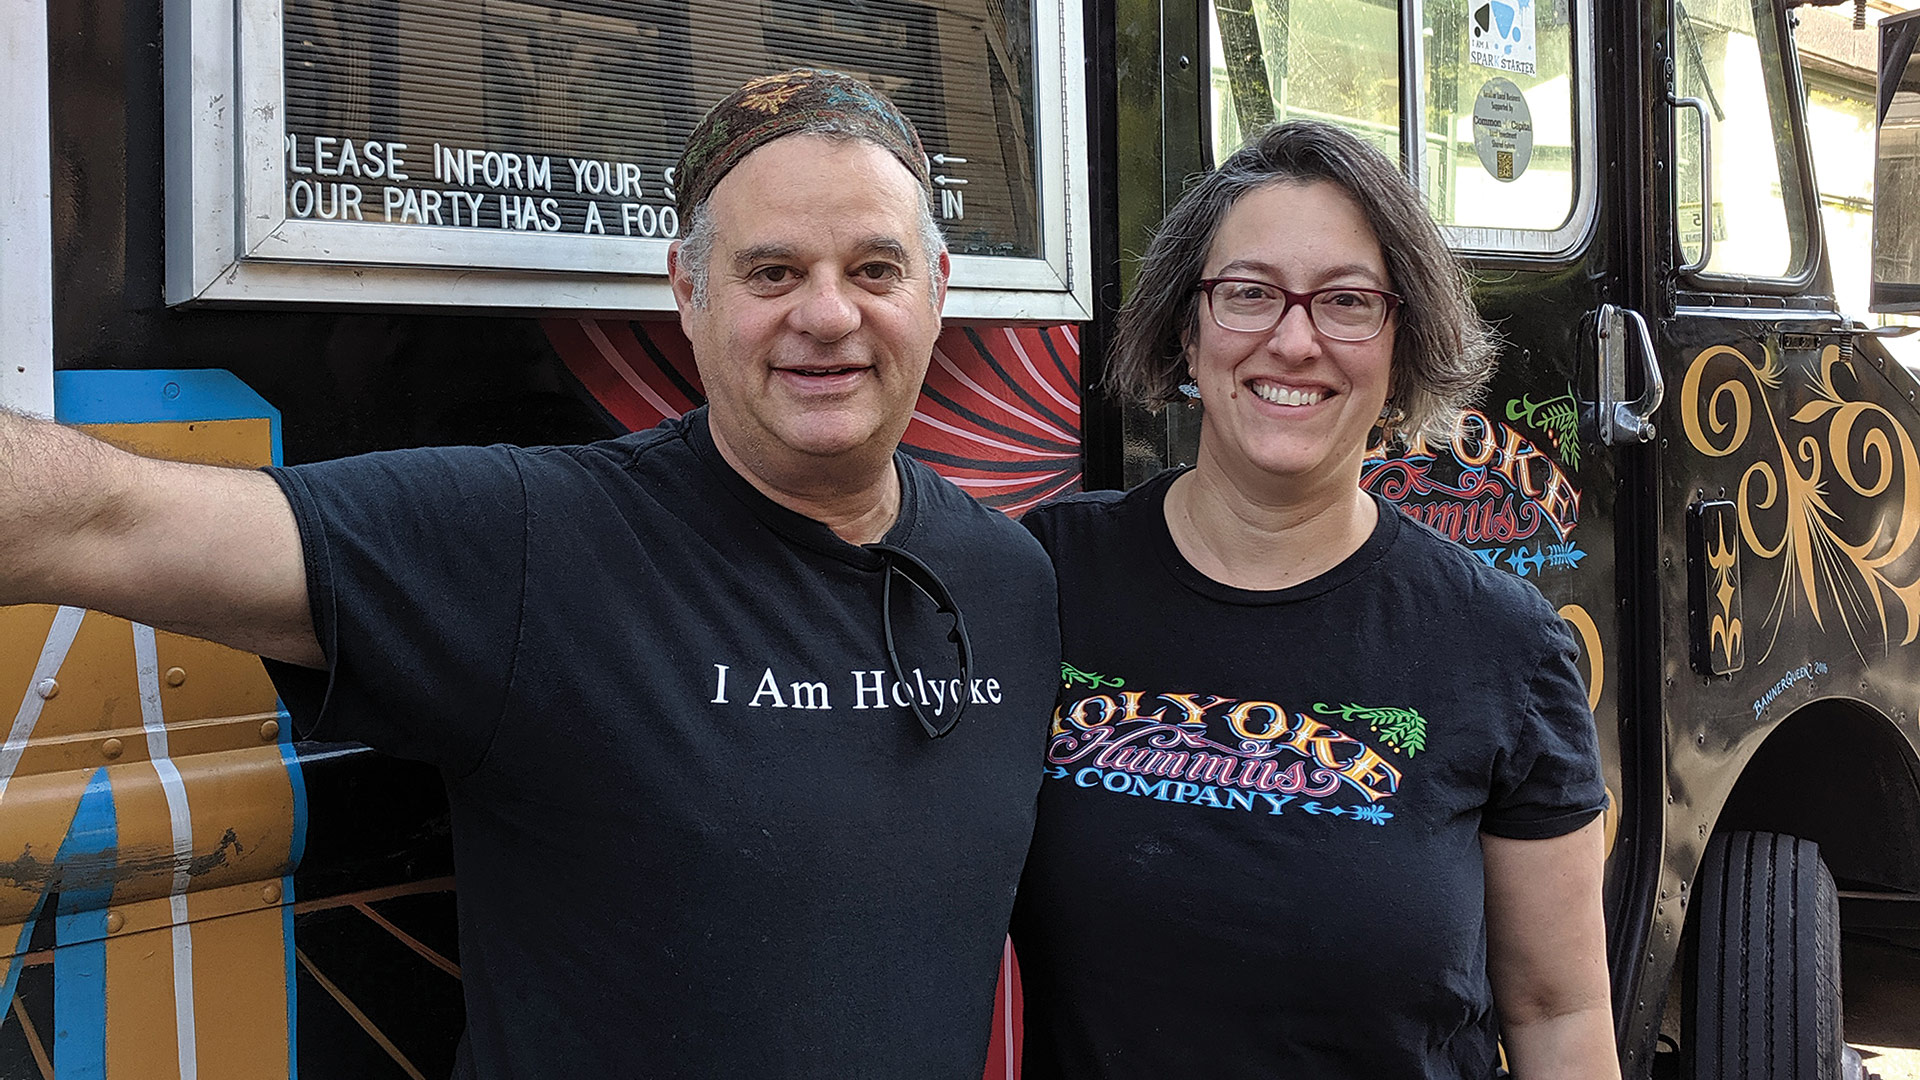 John Grossman and Dawn Cordeiro of Holyoke Hummus